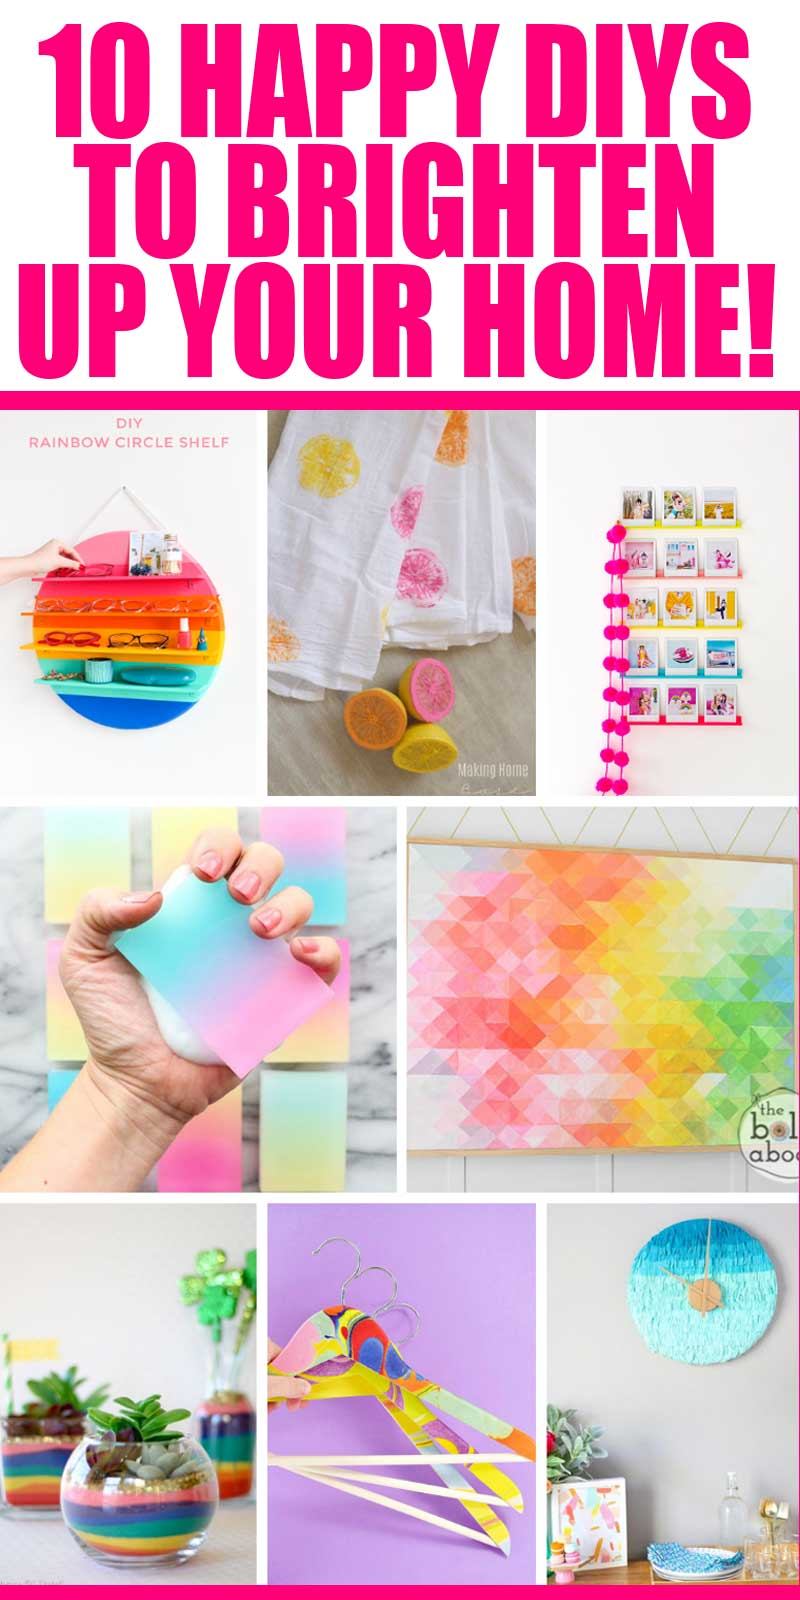 Here are 10 awesome, happy DIY's that you can make to brighten up your home. Bright, fun, colorful decorations to make!  #diy #colorful #crafts #happy